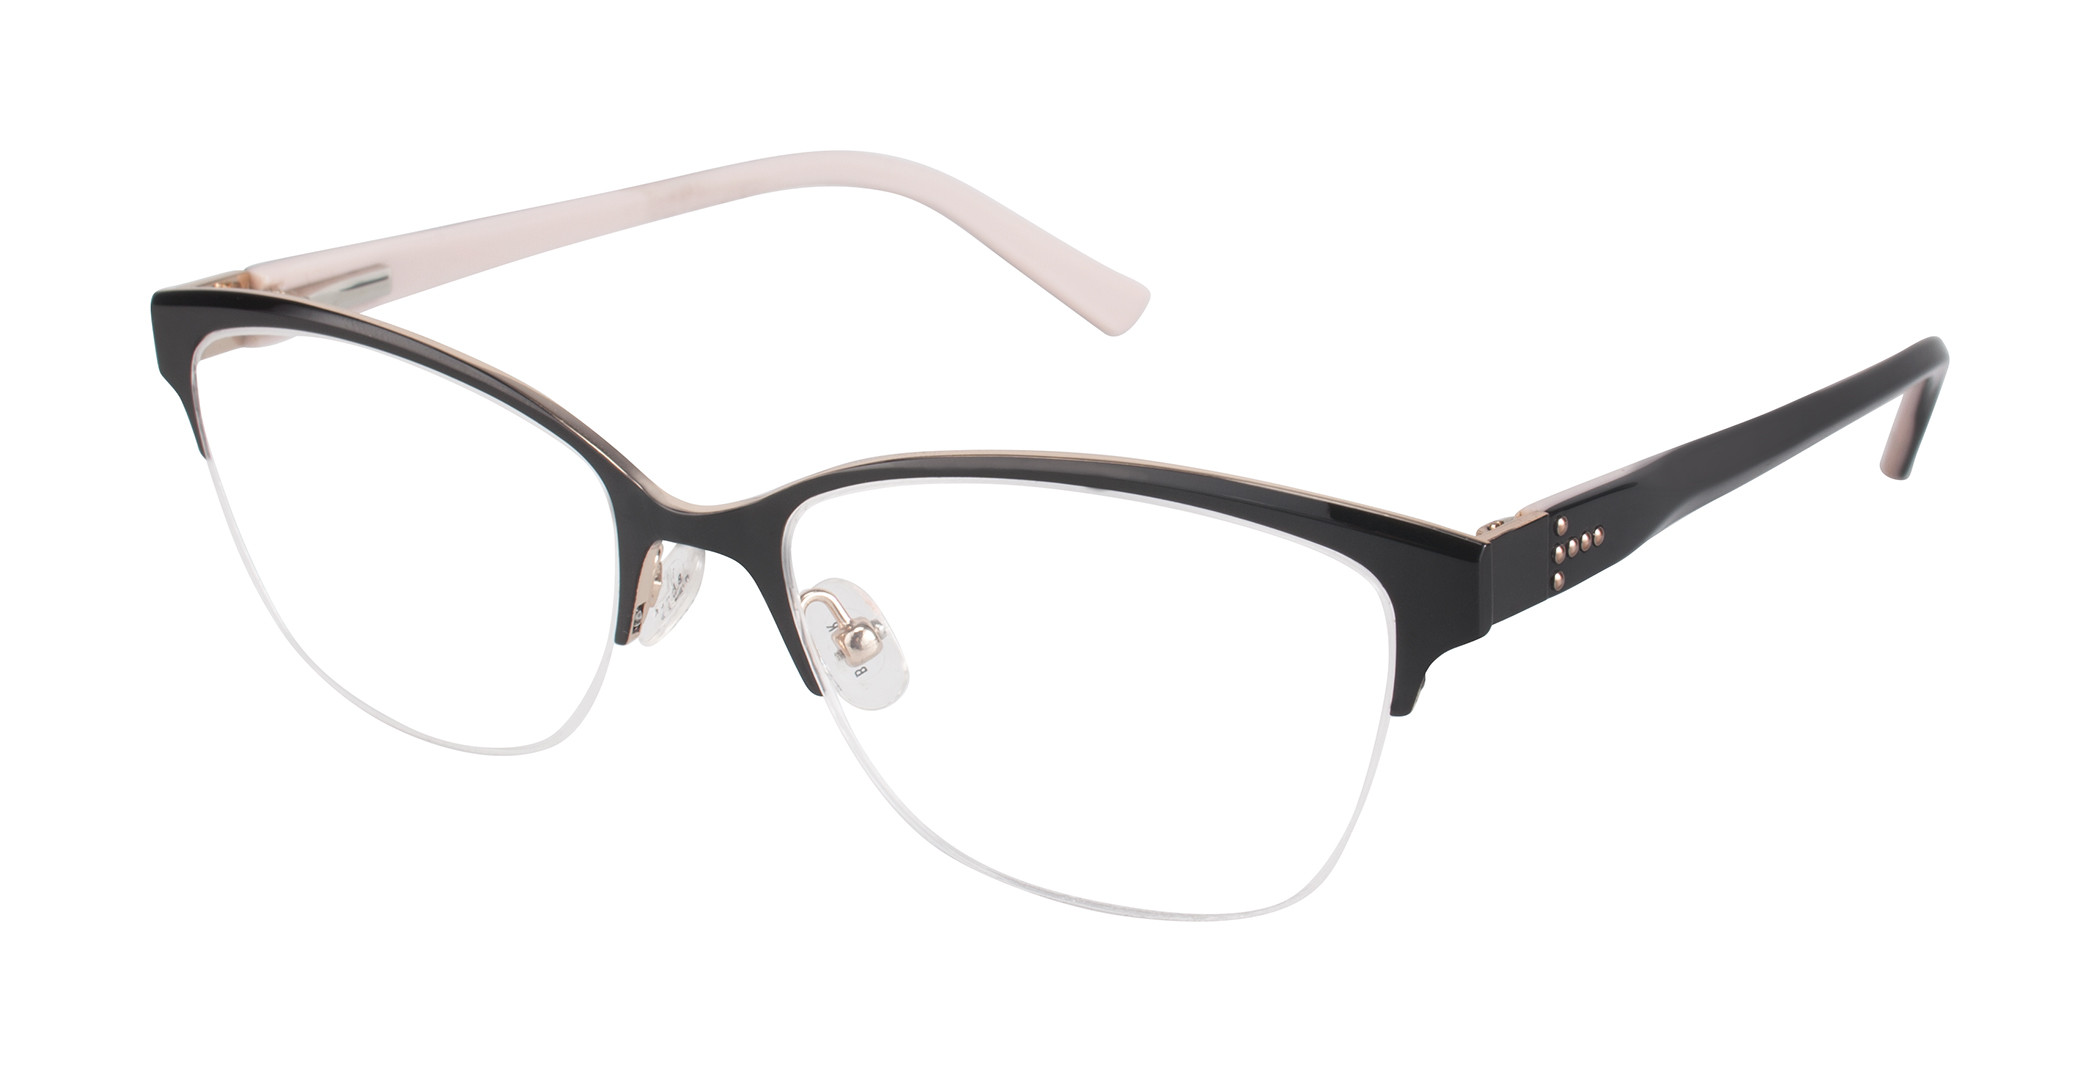 7fbd9540304 Receive 10% Off and a Free Cleaning Kit. Ted Baker B241 Eyeglasses